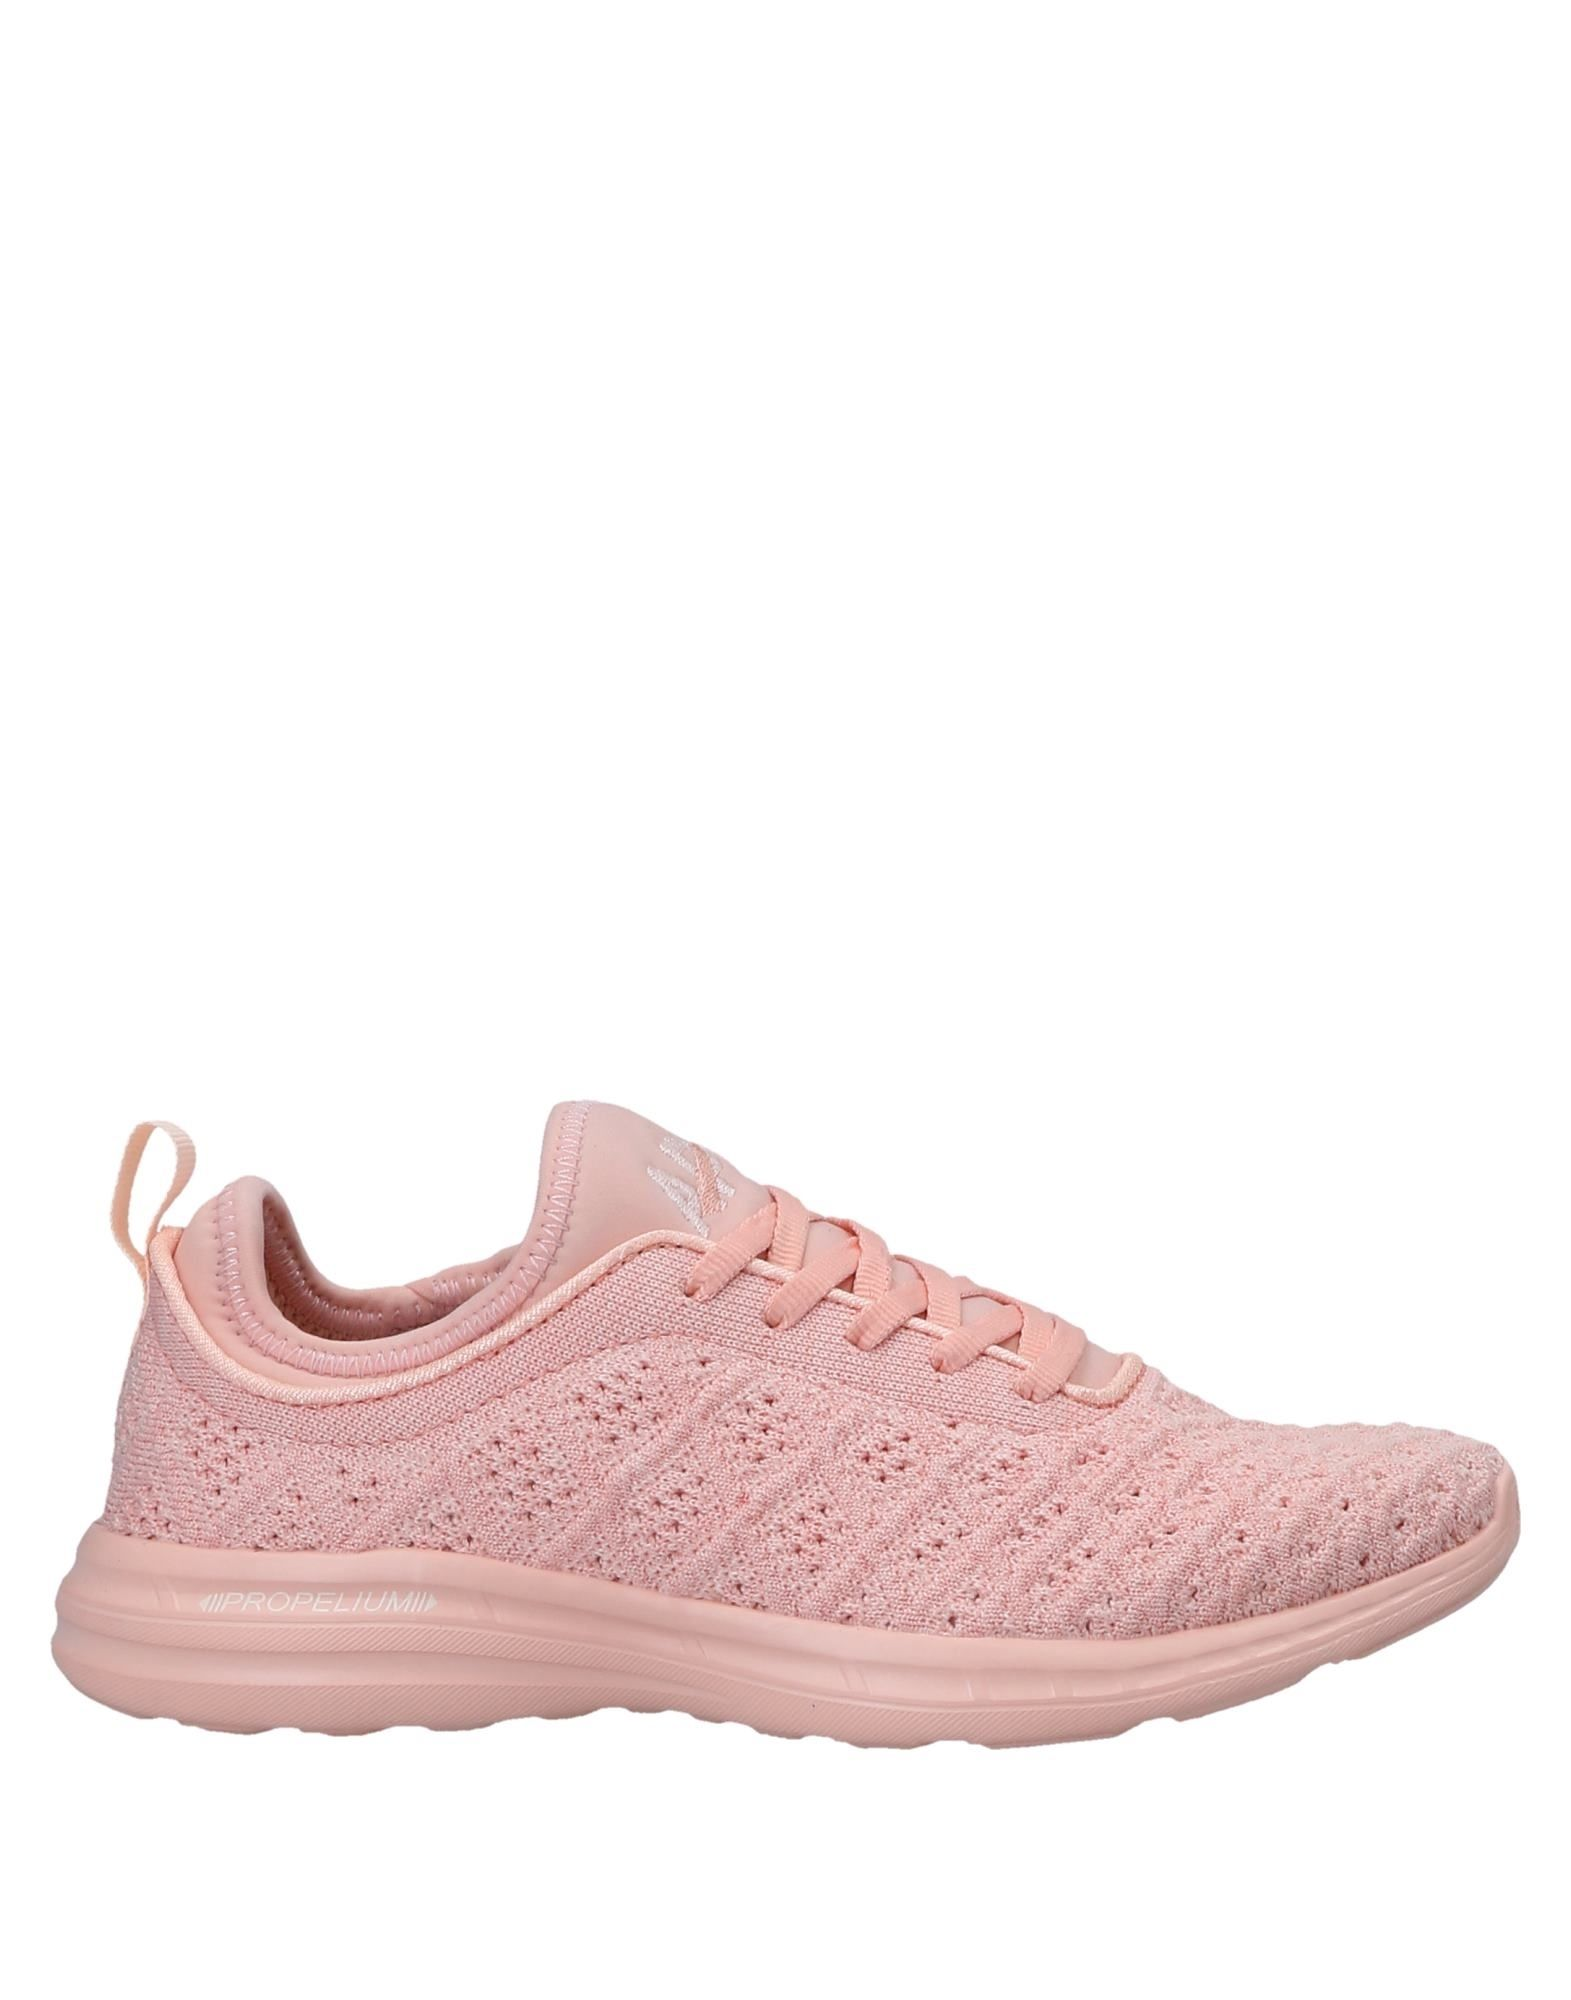 Apl® Athletic Propulsion Labs Sneakers - Women Sneakers Apl® Athletic Propulsion Labs Sneakers Women online on  Canada - 11557875OH 1e2399